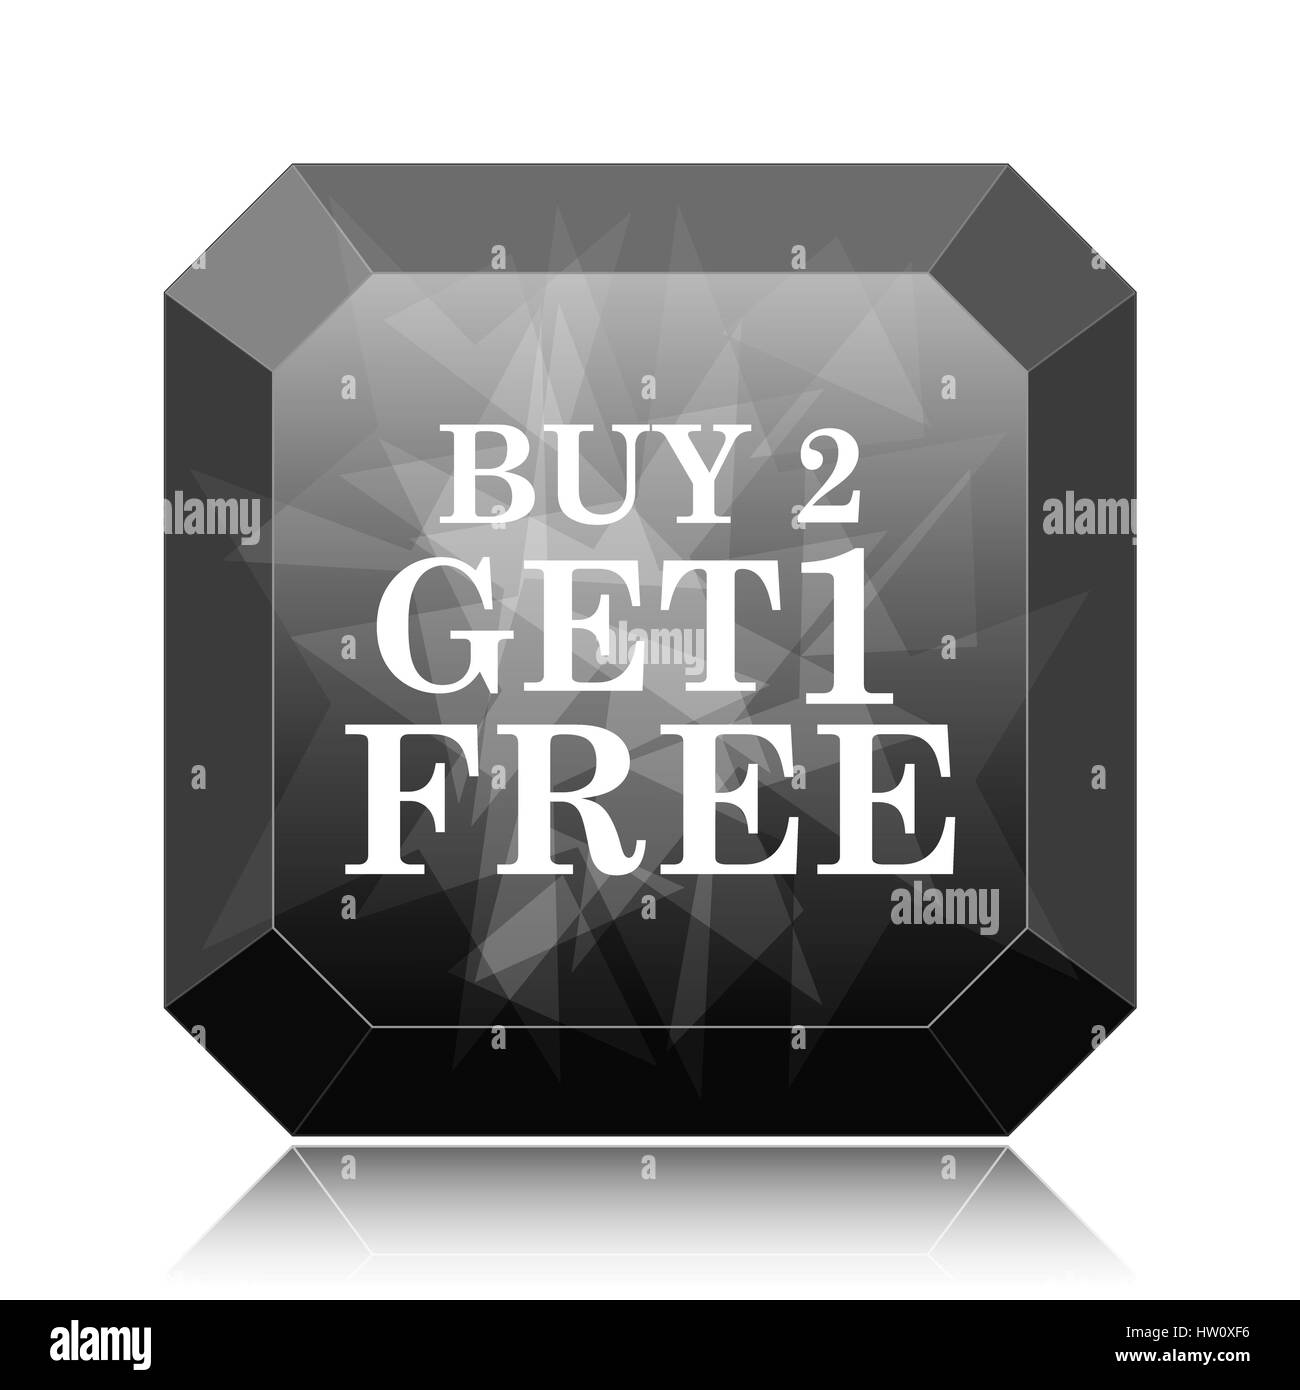 Buy 2 get 1 free offer icon, black website button on white Stock